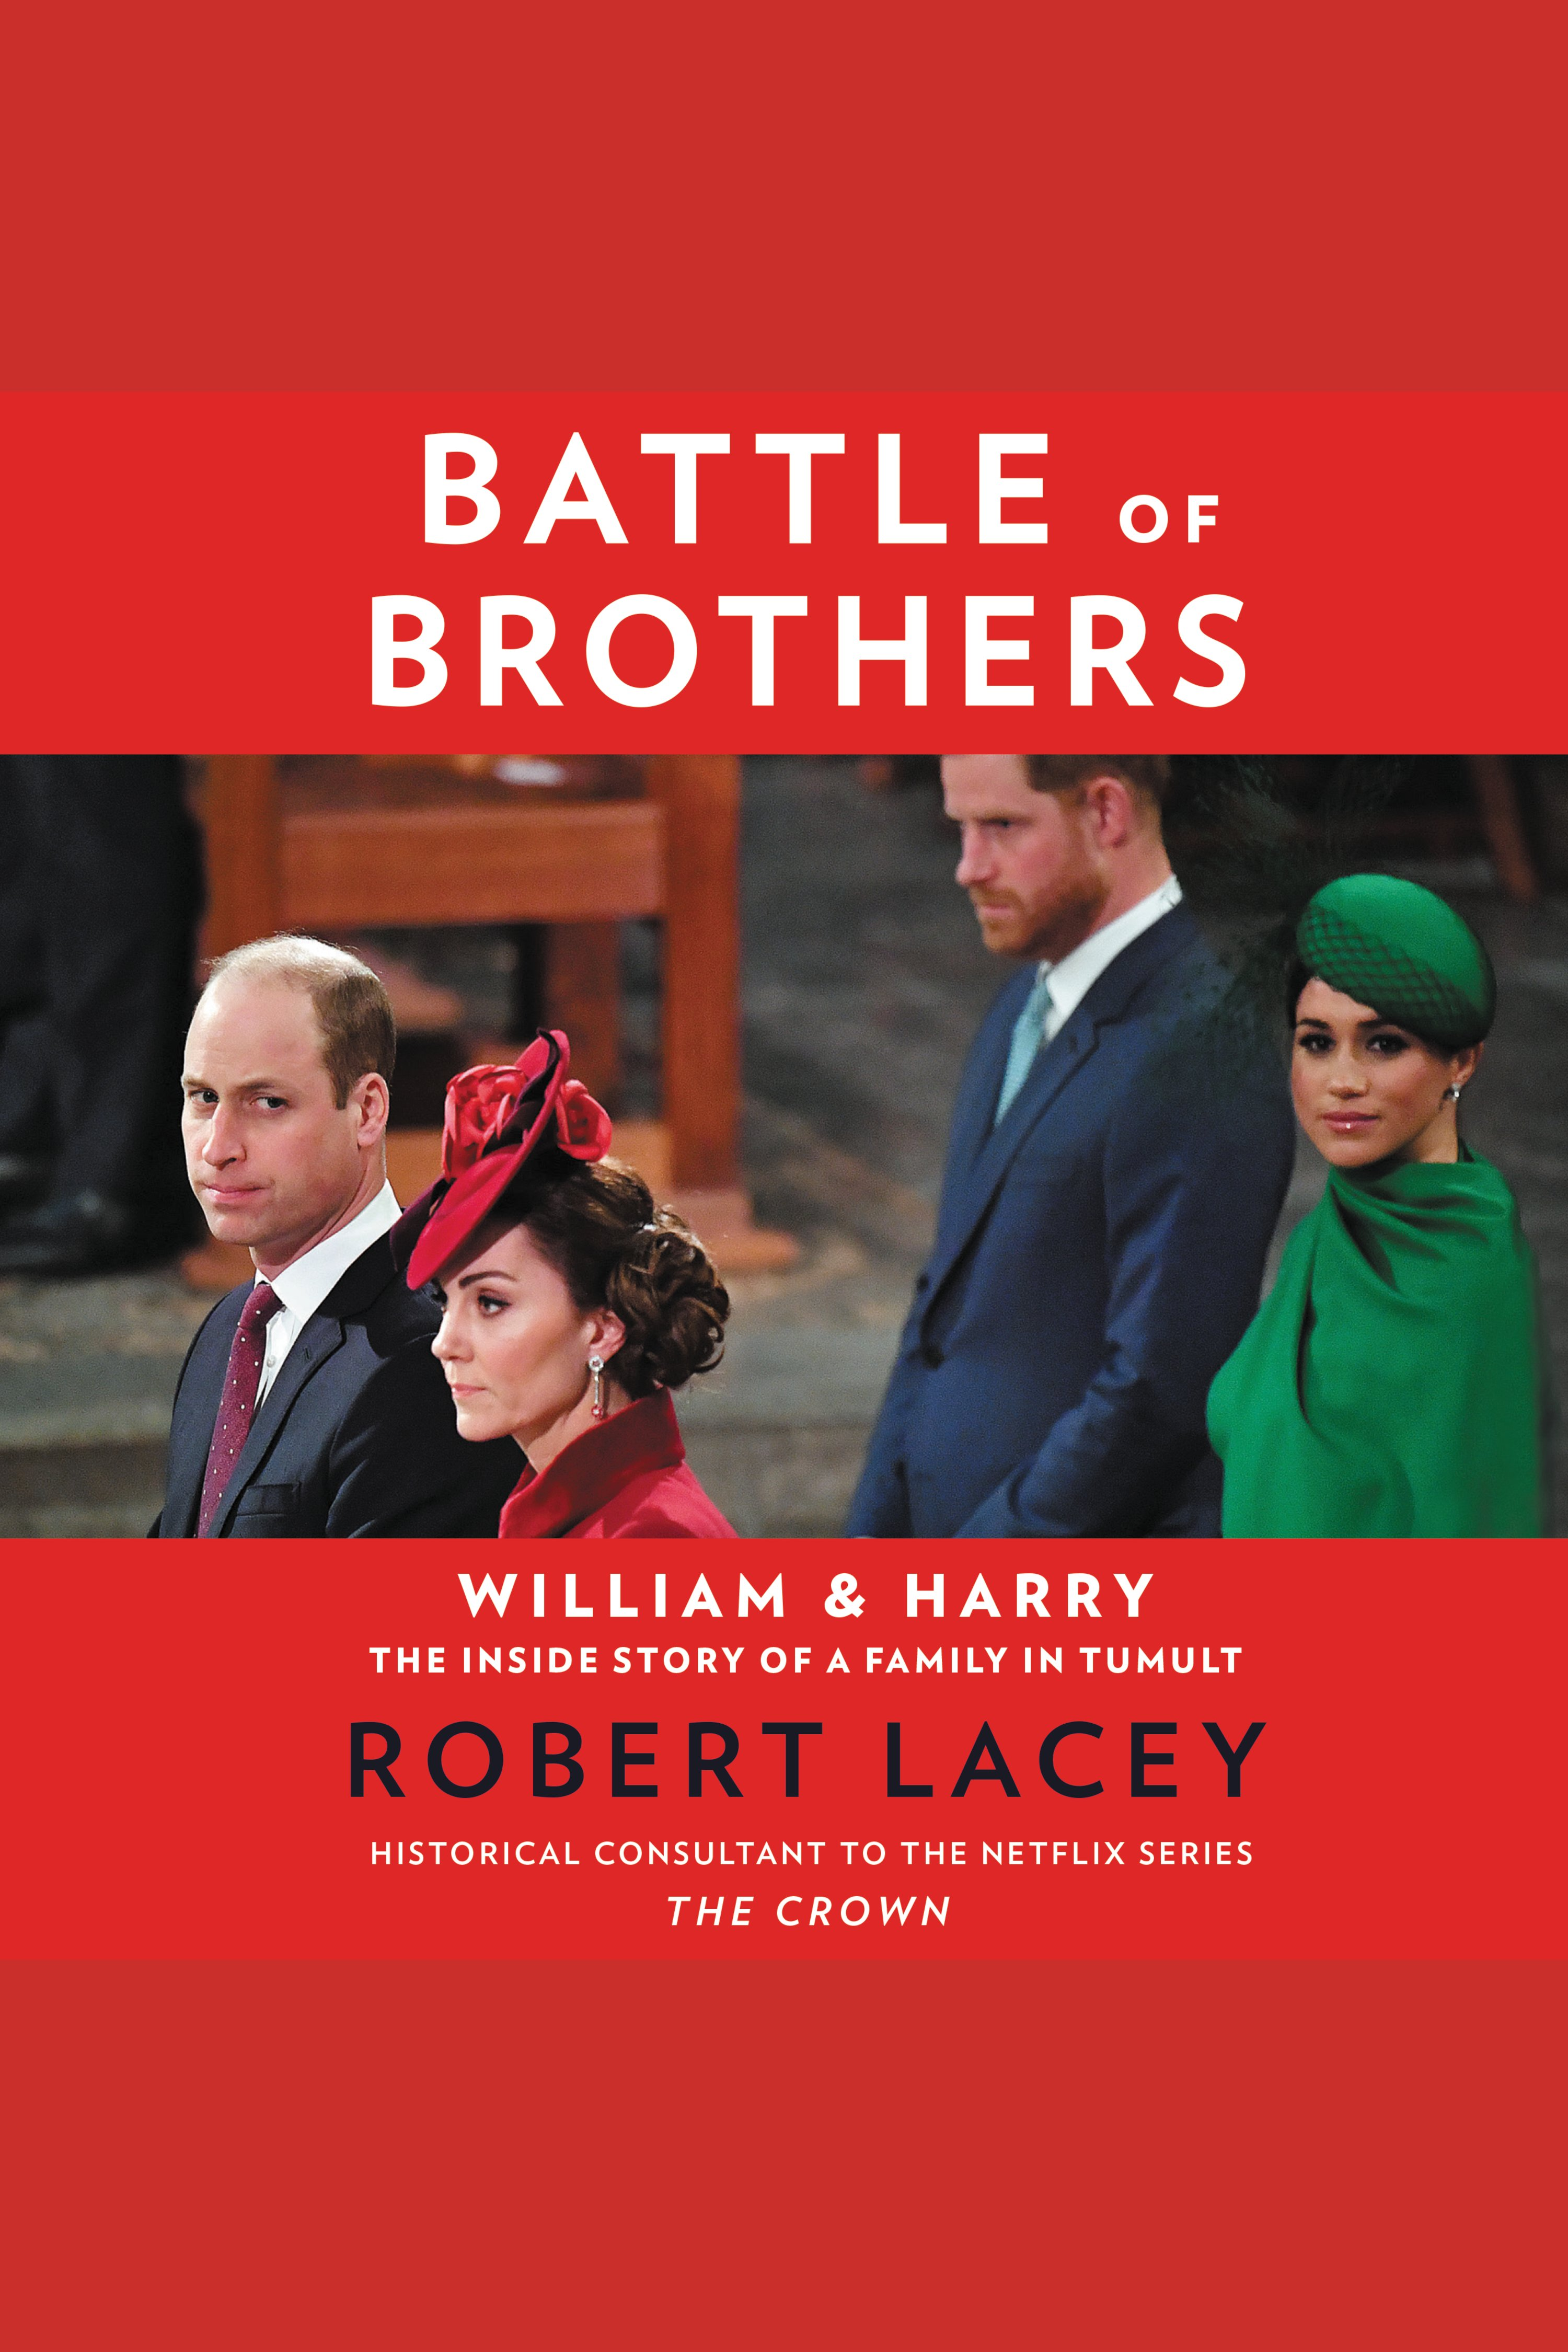 Battle of Brothers William and Harry - The Inside Story of a Family in Tumult